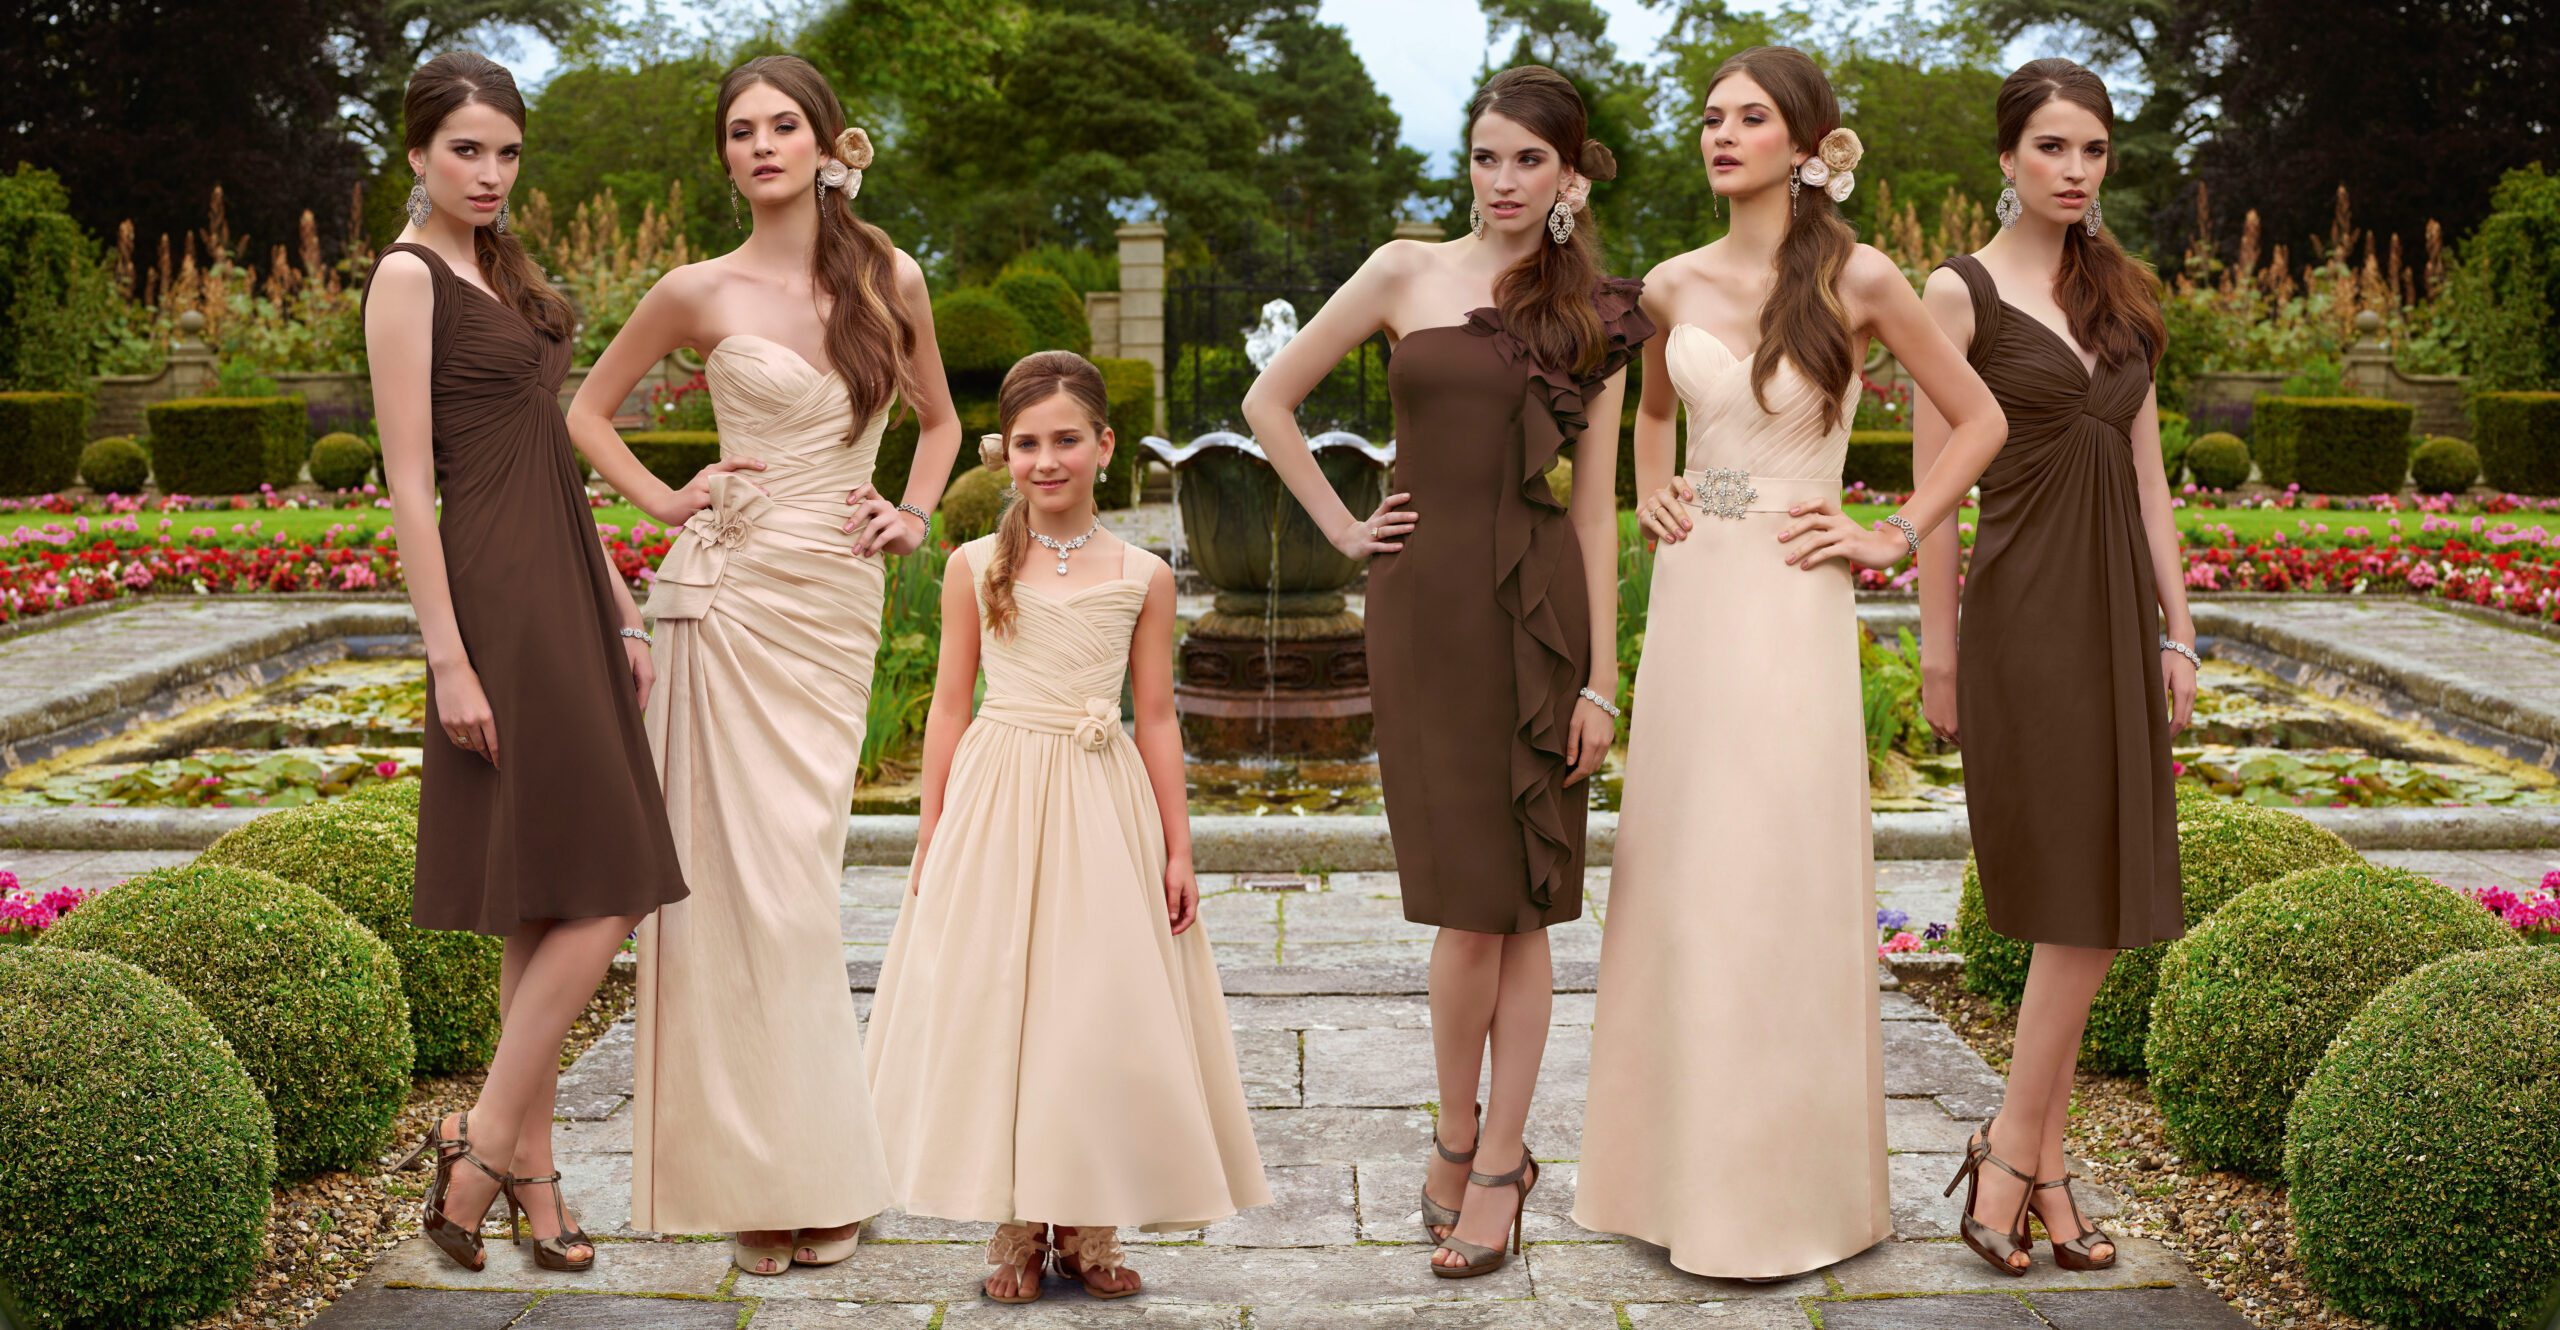 No stress with the bridesmaid's dresses!